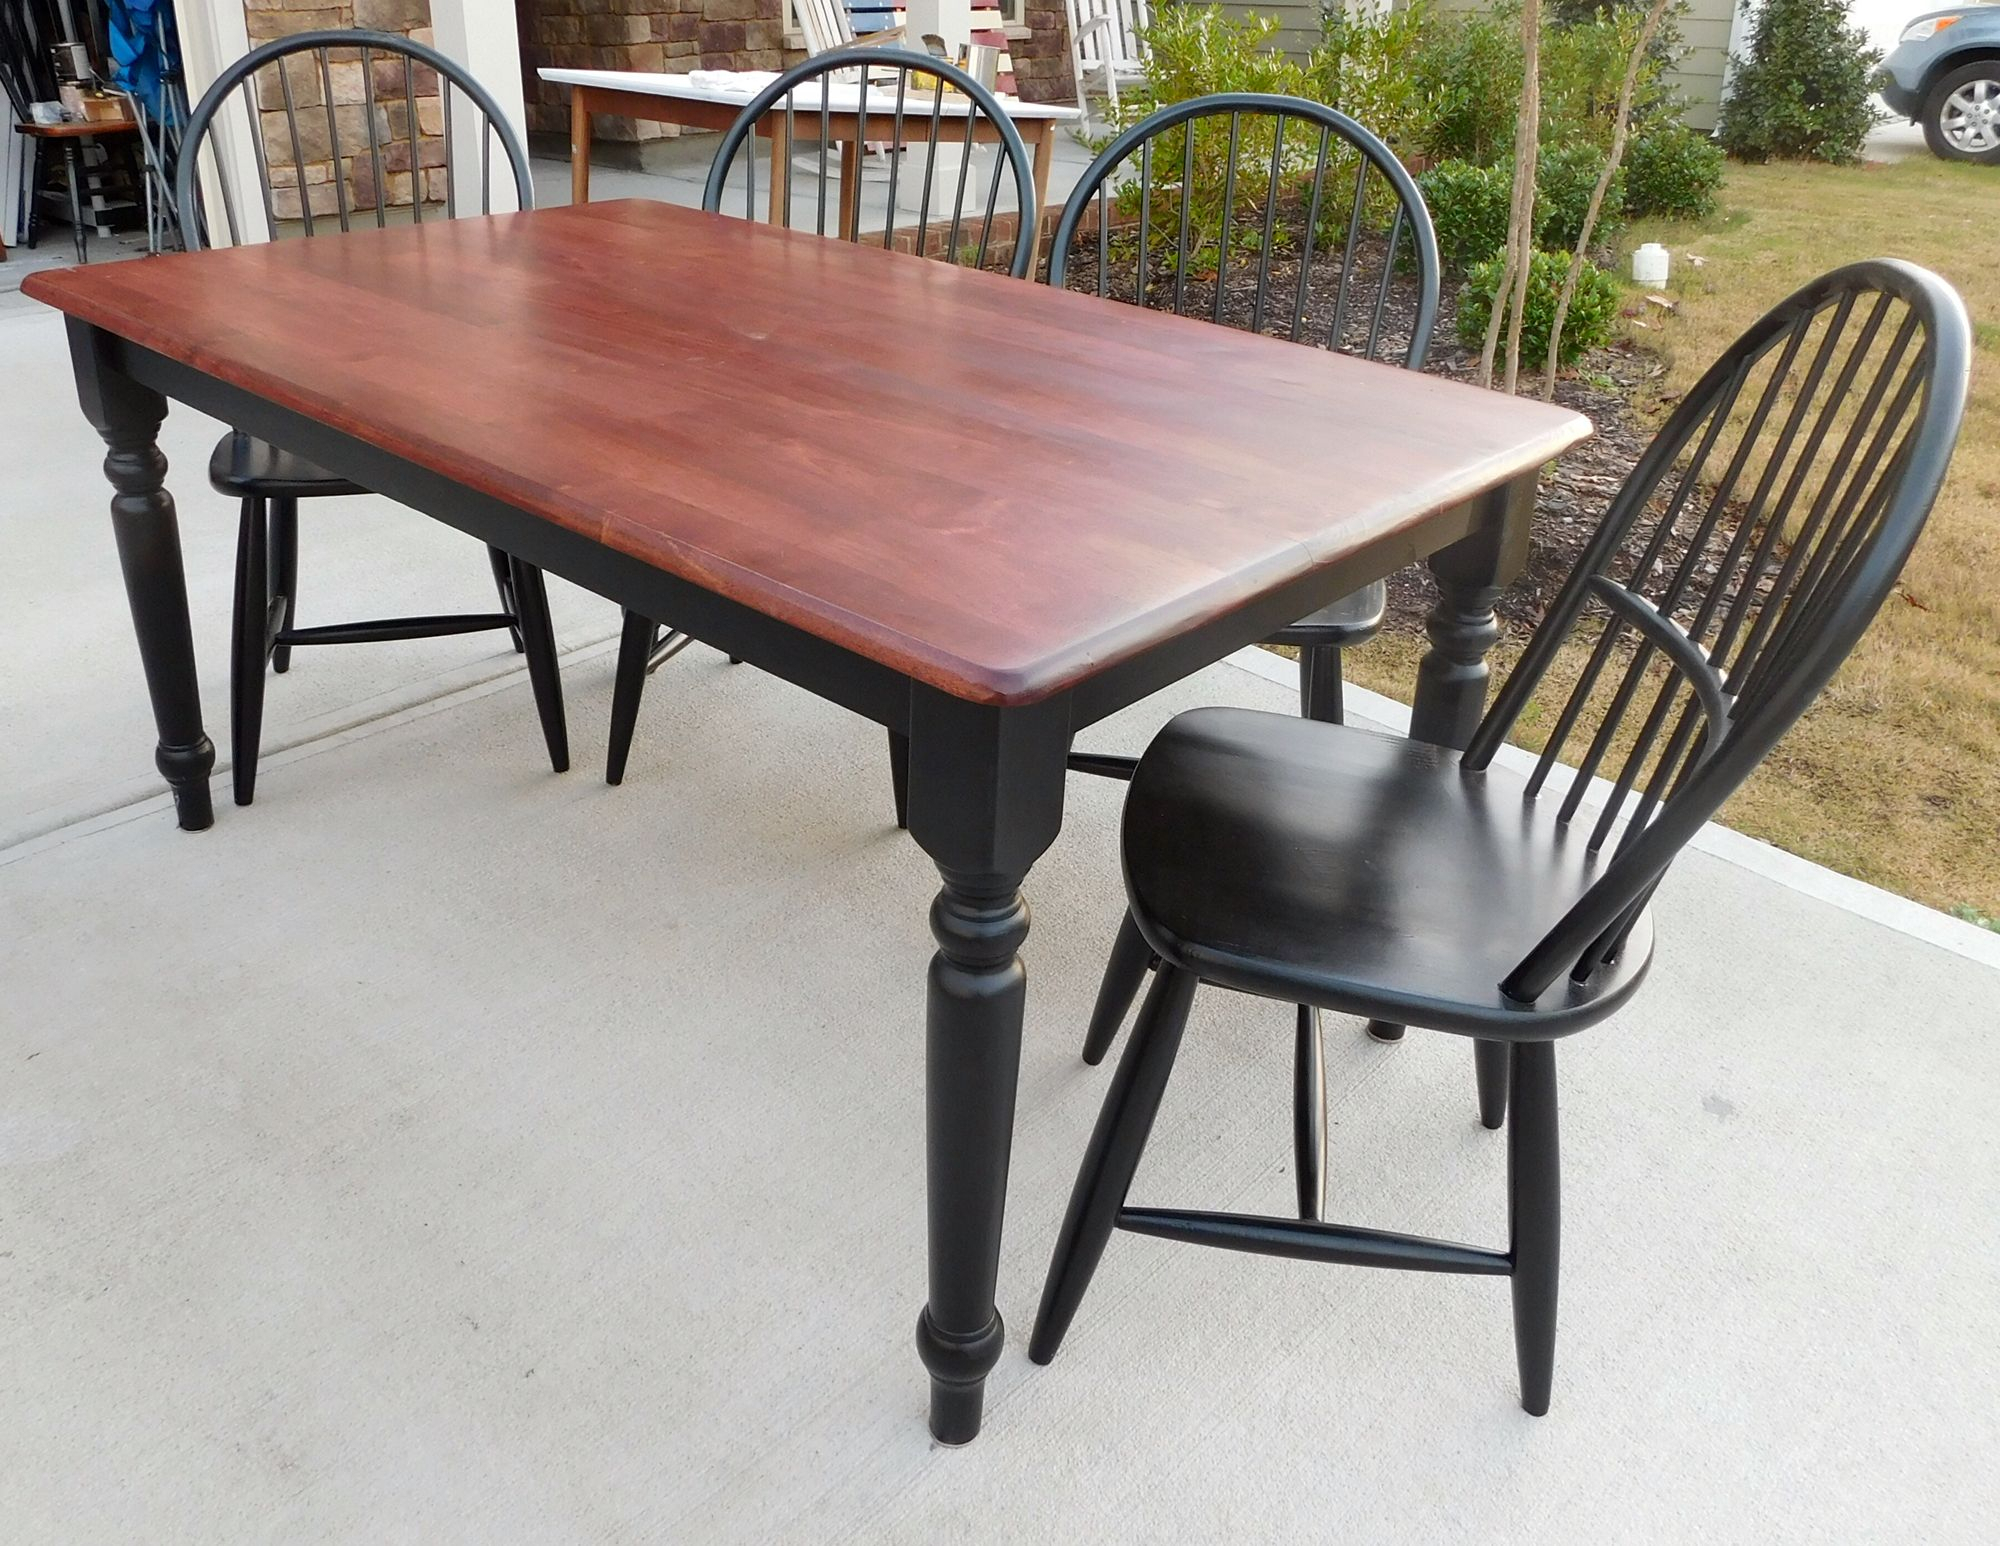 Farmhouse Table & Chairs Red Mahogany Stain, Flat Poly Within Most Popular Rustic Mahogany Benchwright Dining Tables (View 17 of 25)